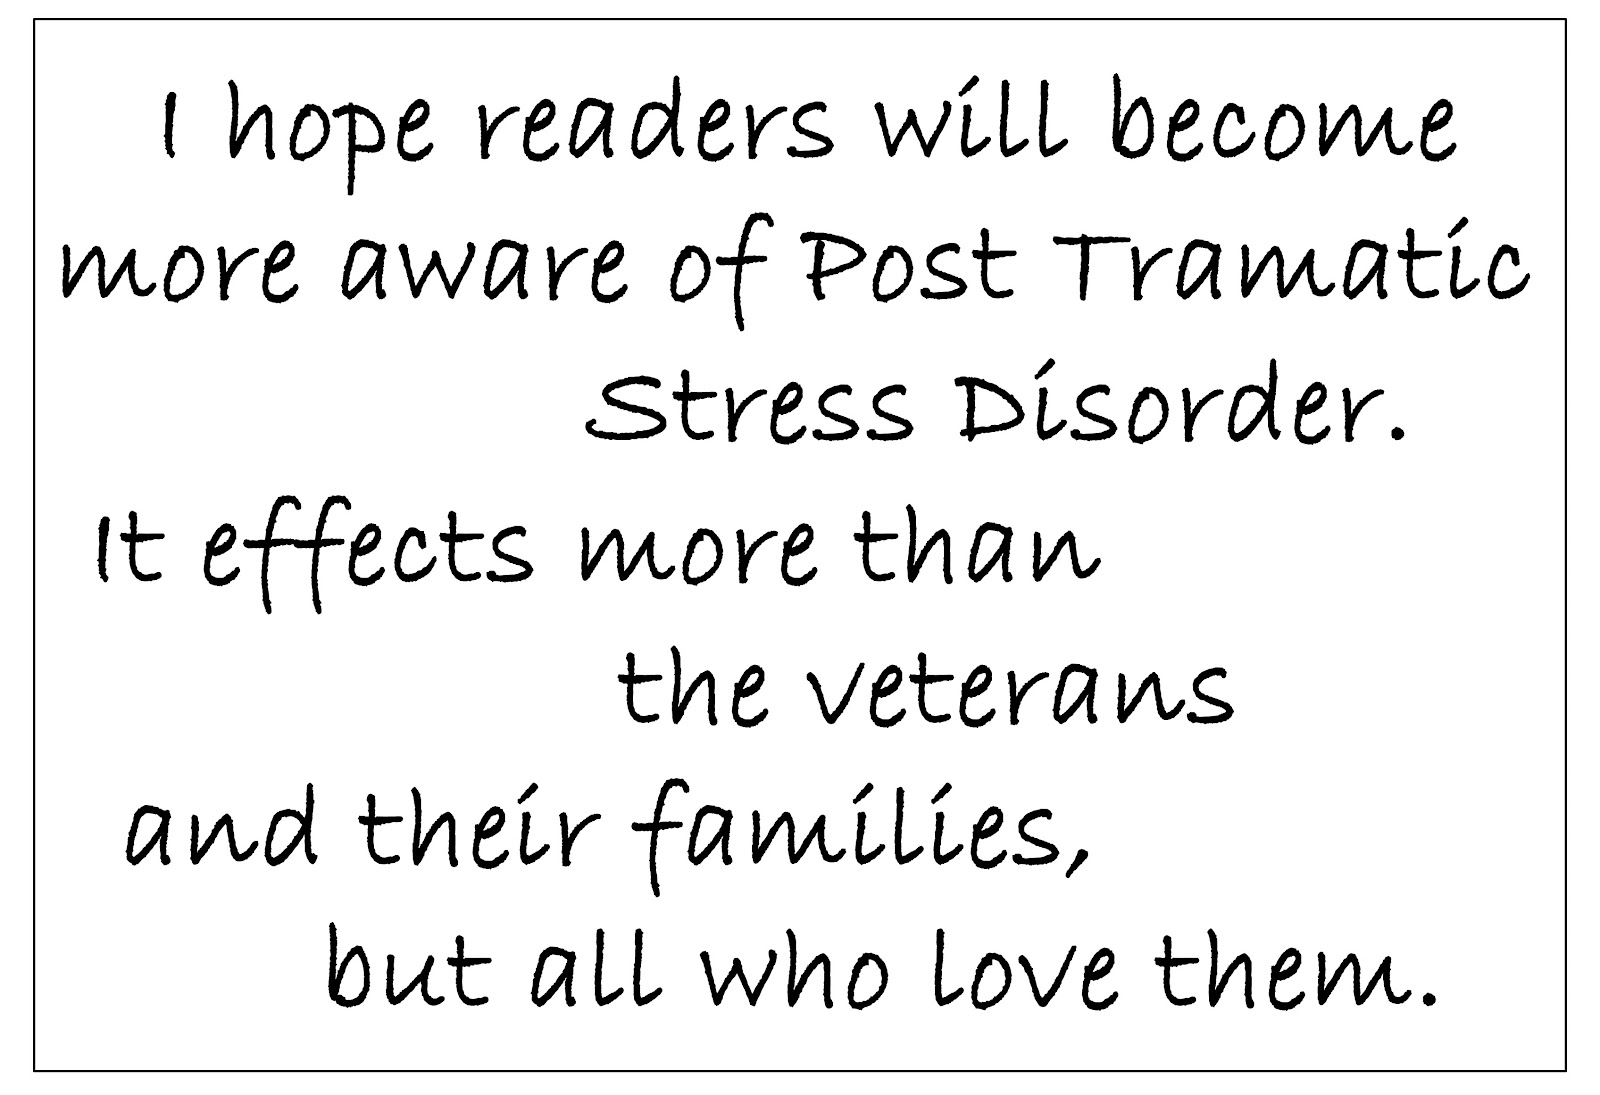 Joan sowards author dark days of promise and interview with author i hope readers will become more aware of ptsd it effects more than the veterans and their families but all who love them it isnt unusual for me to be fandeluxe Images